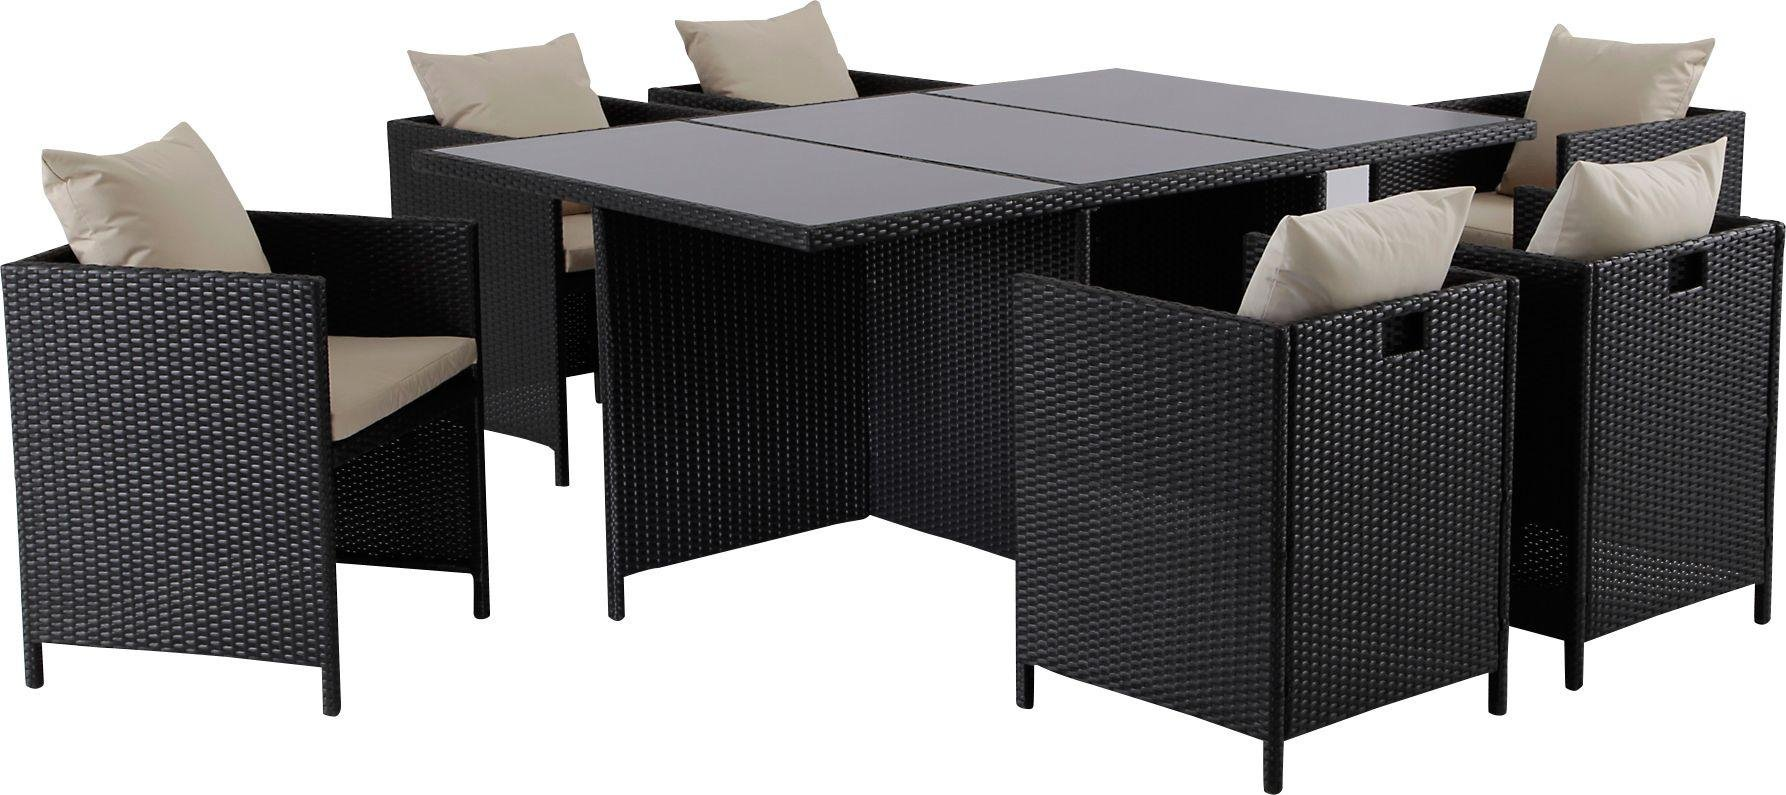 Garden Furniture 6 Chairs buy hand-woven rattan effect cube 6 seater patio set - black at